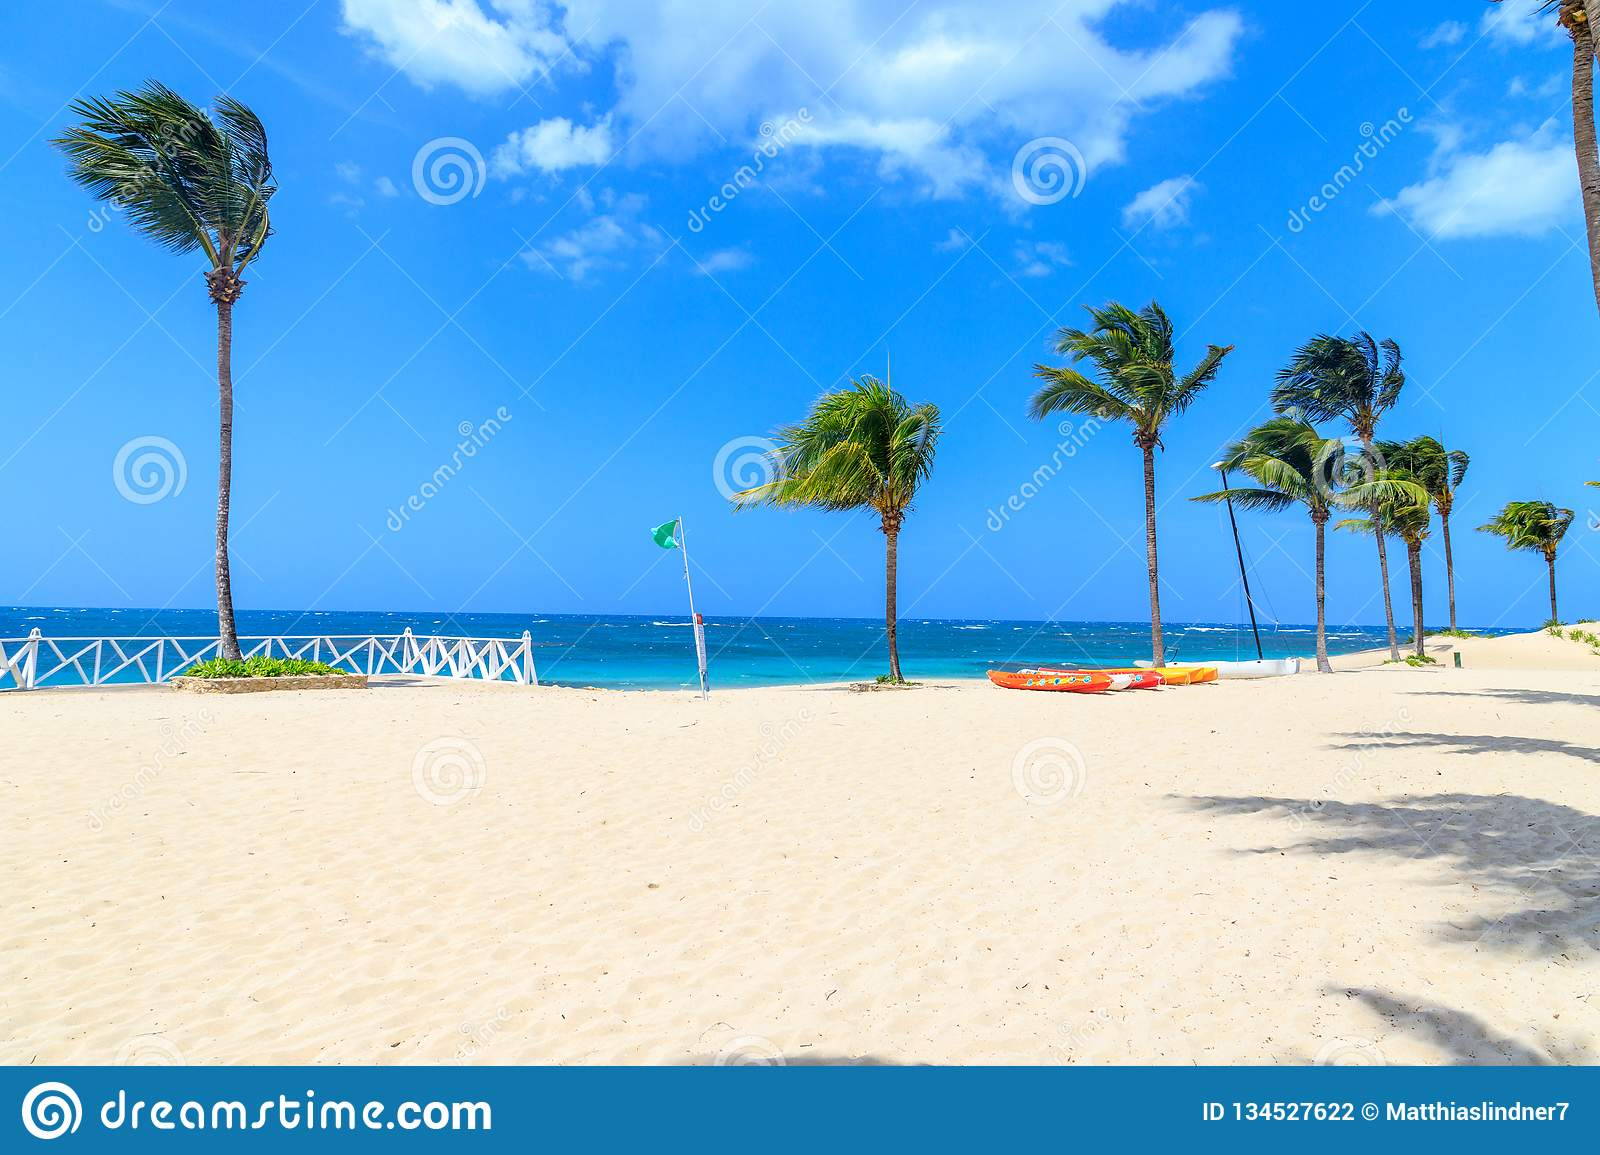 Green flag on the beach indicates no danger when bathing. Dominican Republic